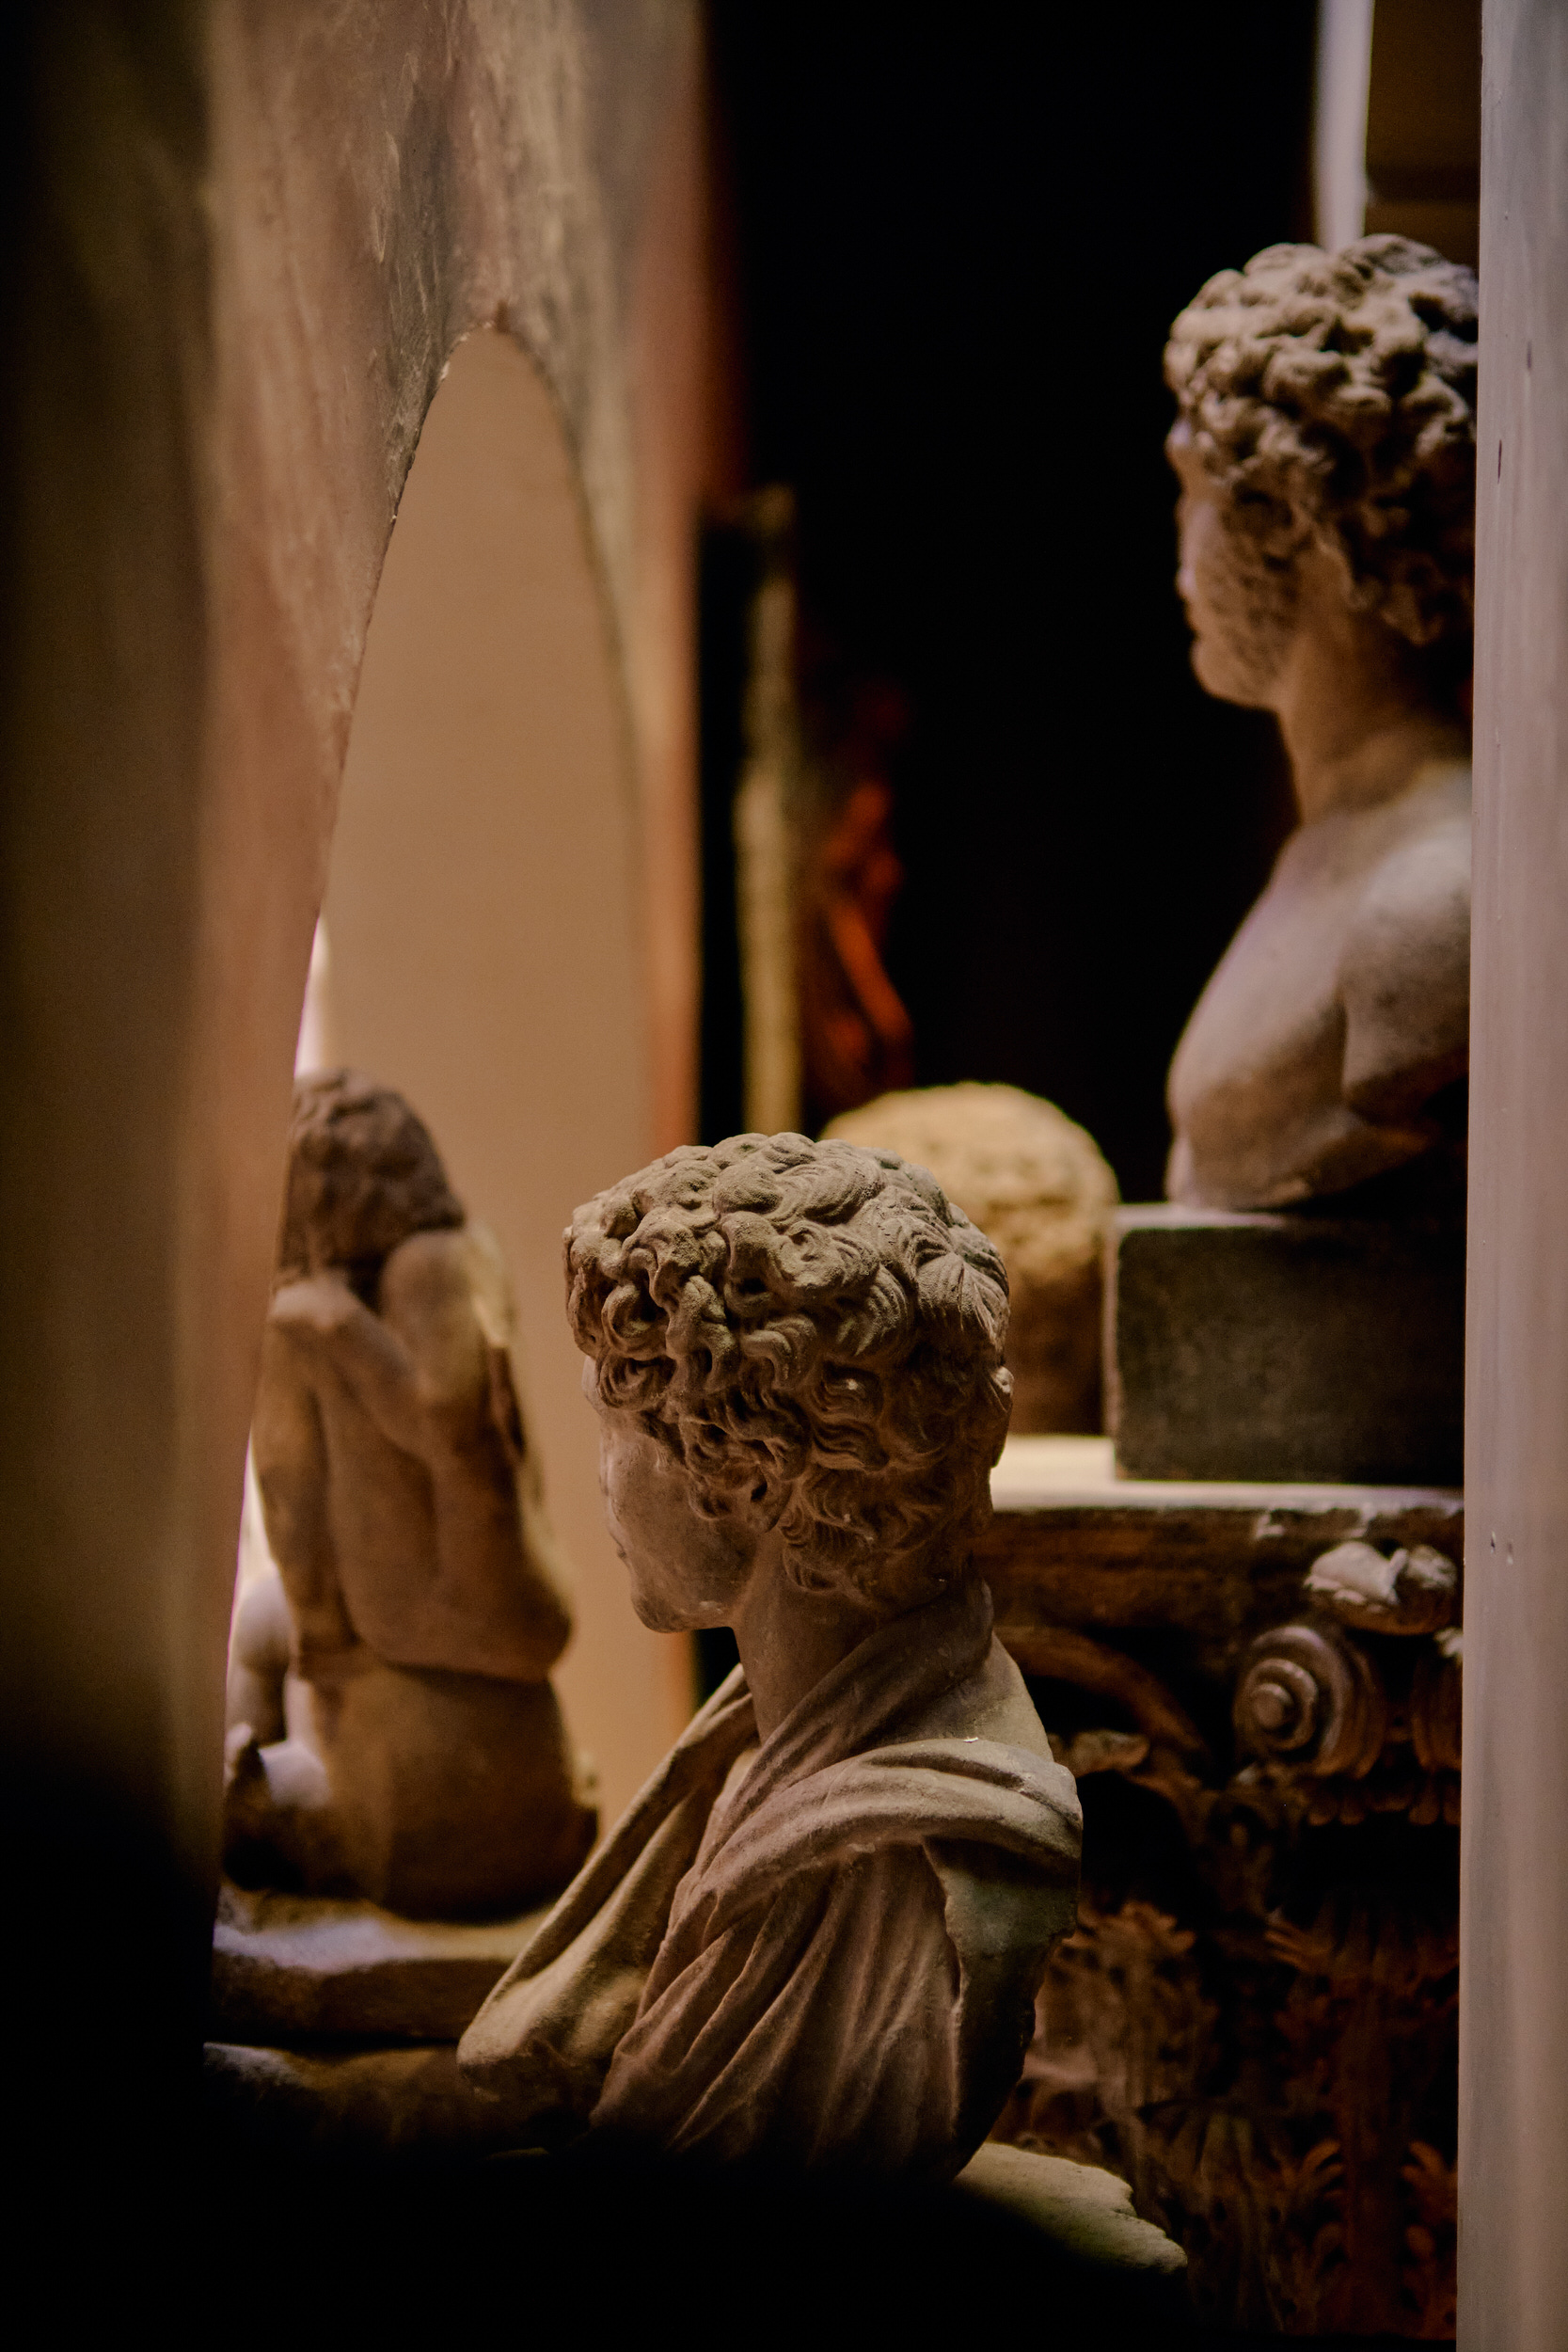 JStoker-Fujifilm-50mmF1Test-JohnSoaneMuseum-0869